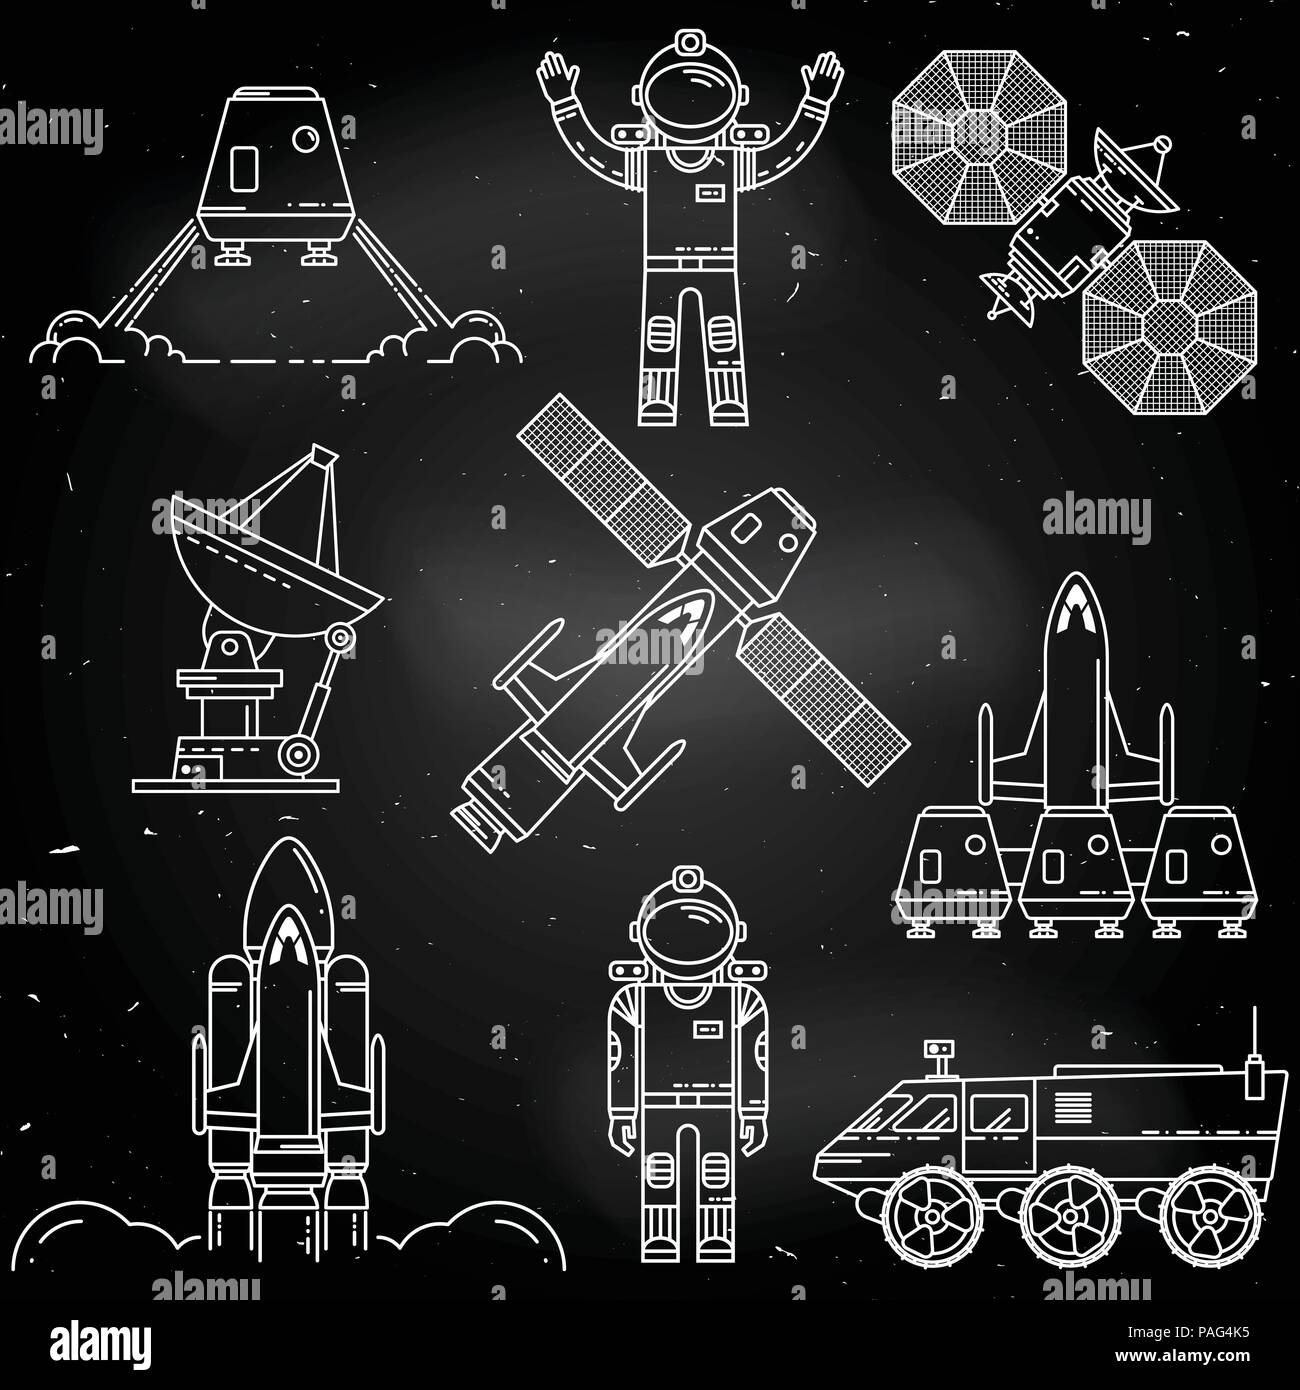 Space Thin Line Icon Design On The Chalkboard Human Mission To Mars